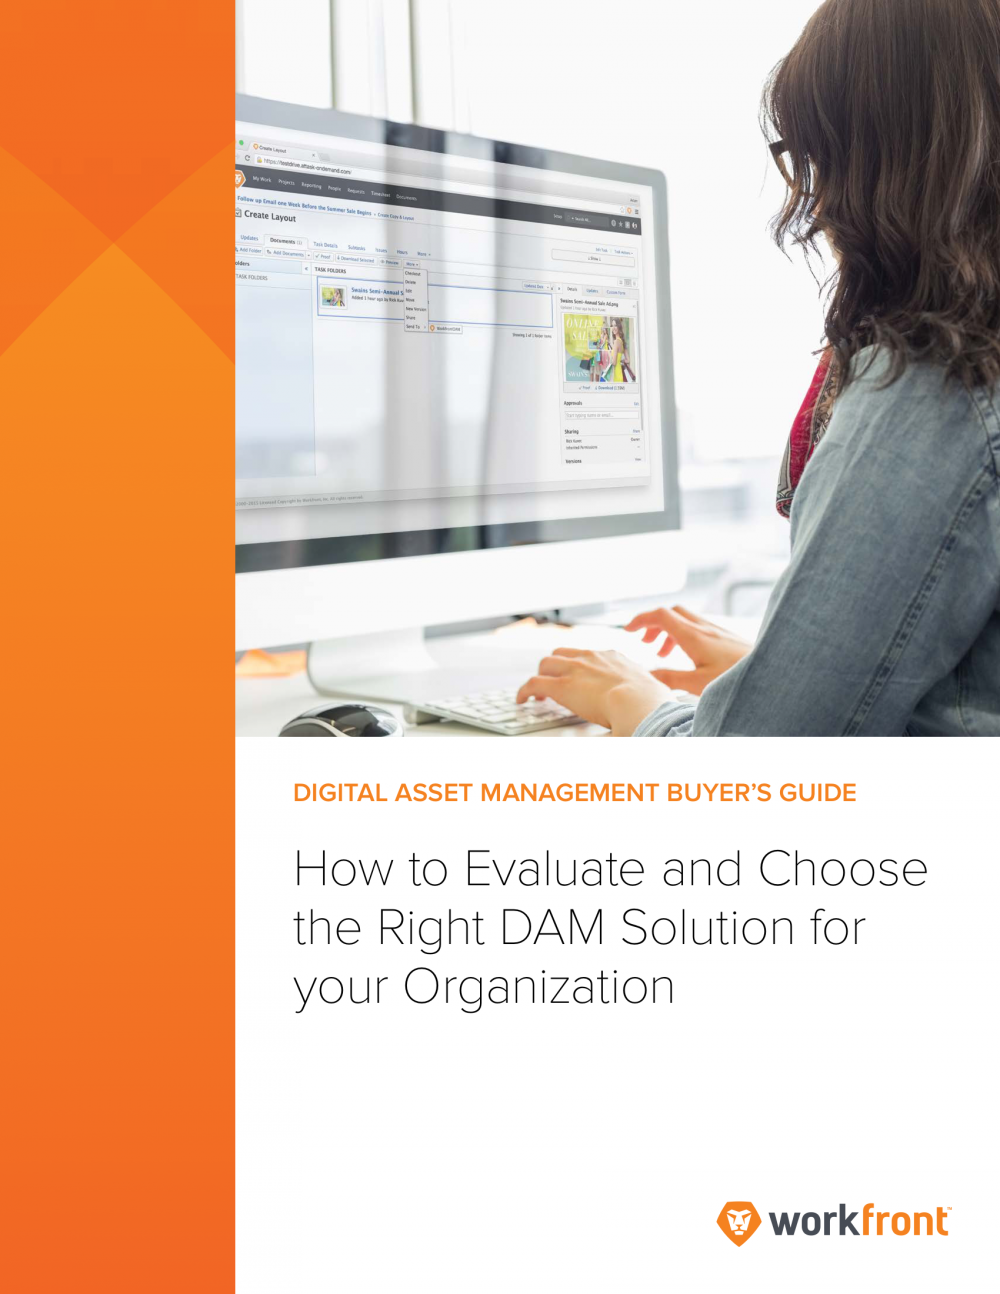 How to Evaluate and Choose the Right DAM Solution for Your Organization